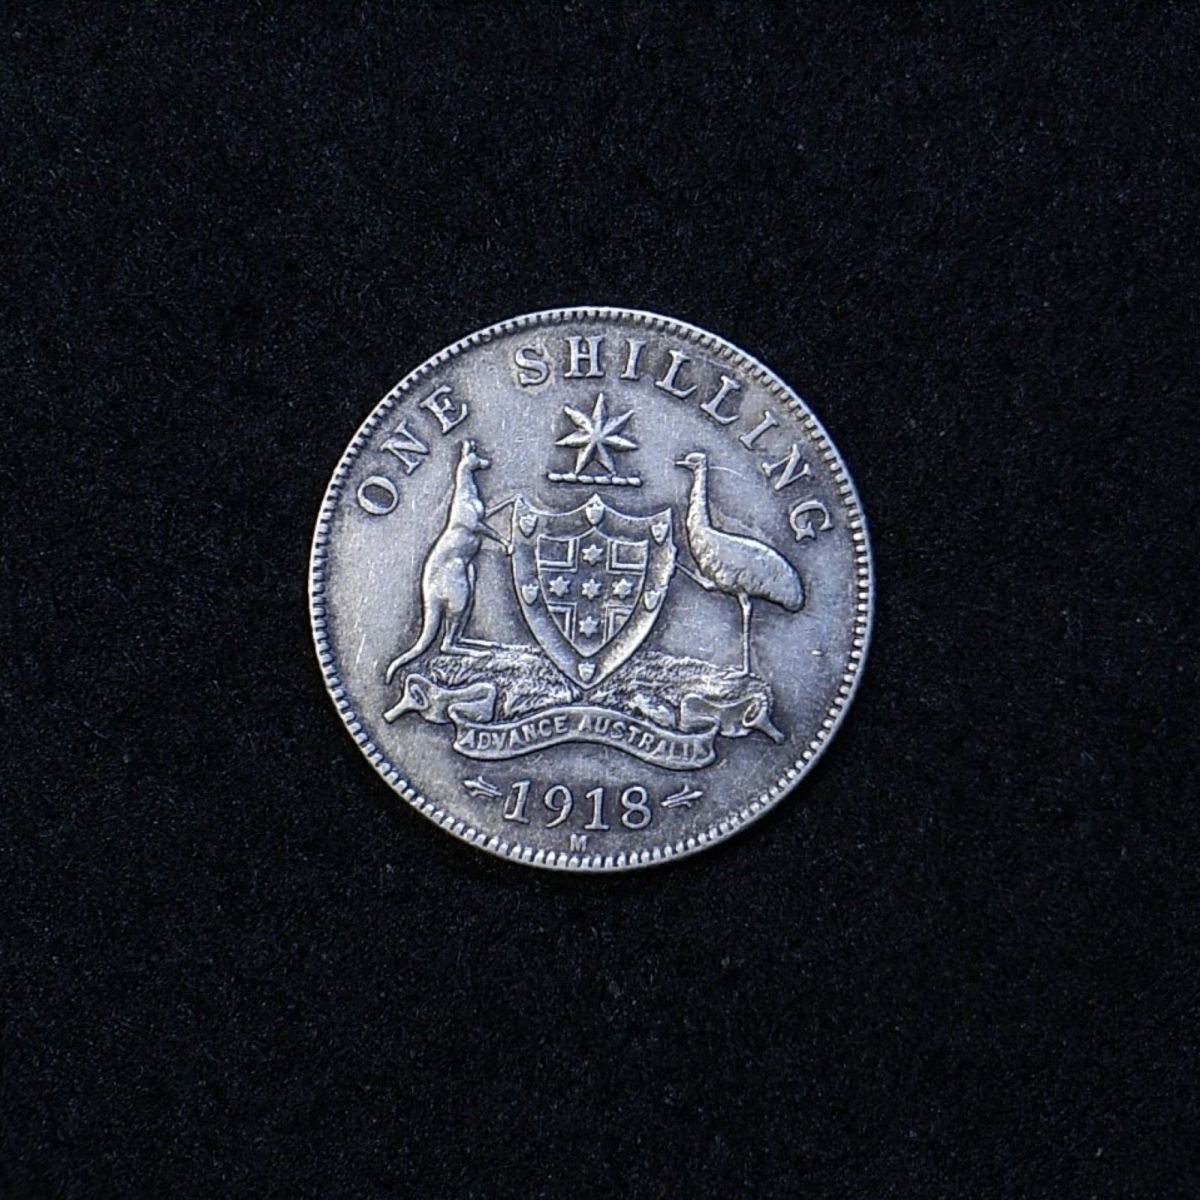 Aus Shilling 1918M reverse showing overall appearance